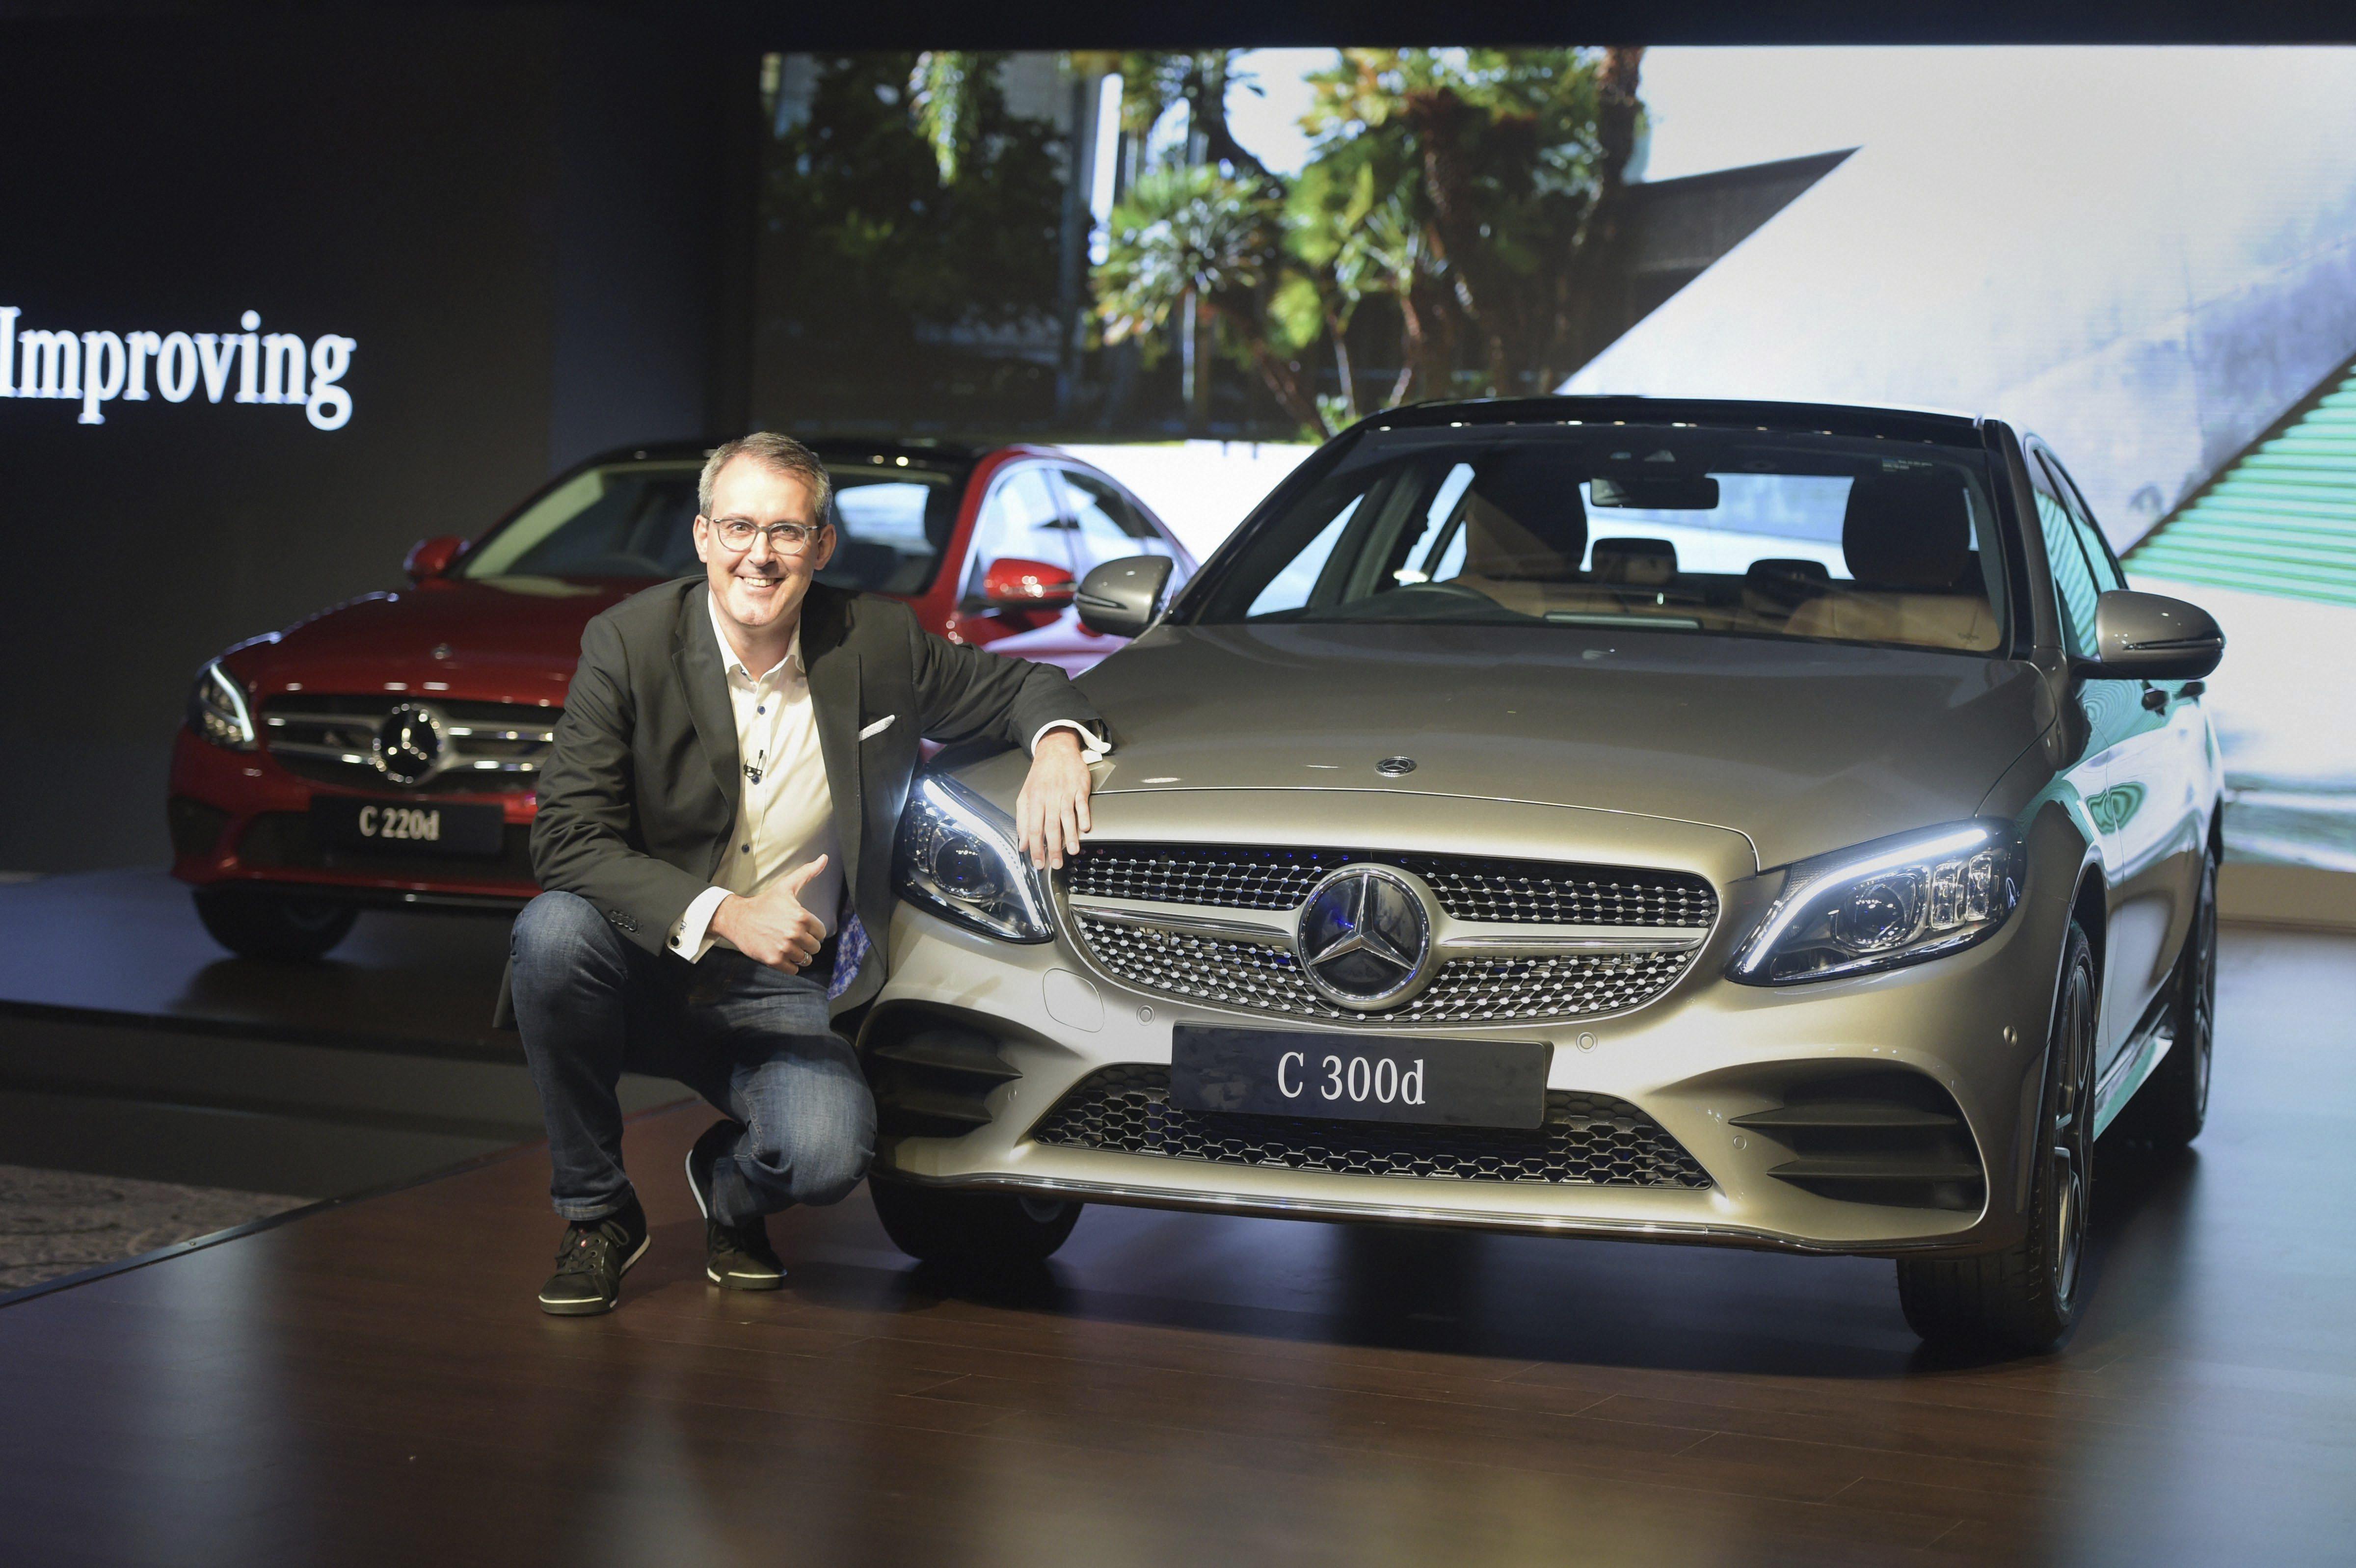 Mercedes-Benz India's Vice President (Sales & Marketing) Michael Jopp poses for photographs at the launch of the C-Class facelift sedans C 300d, C 220d Prime and C 220d Progressive, in New Delhi - PTI